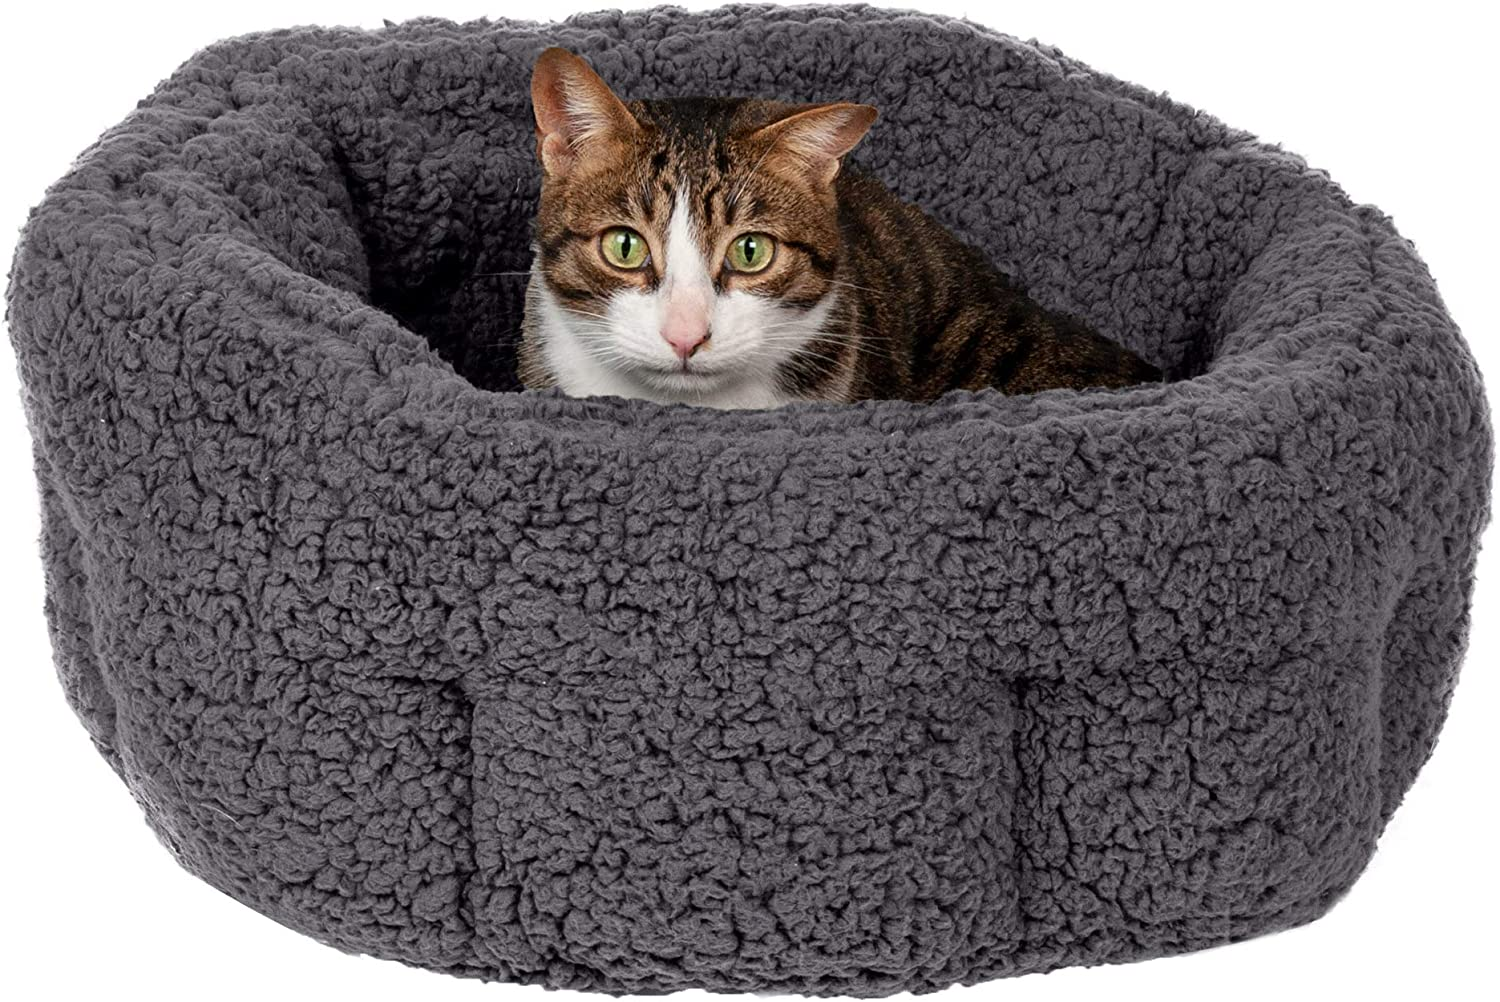 Furhaven Pet Beds for Dogs 18%OFF and Beanbag-Style B Ball - Cats Plush スーパーセール期間限定